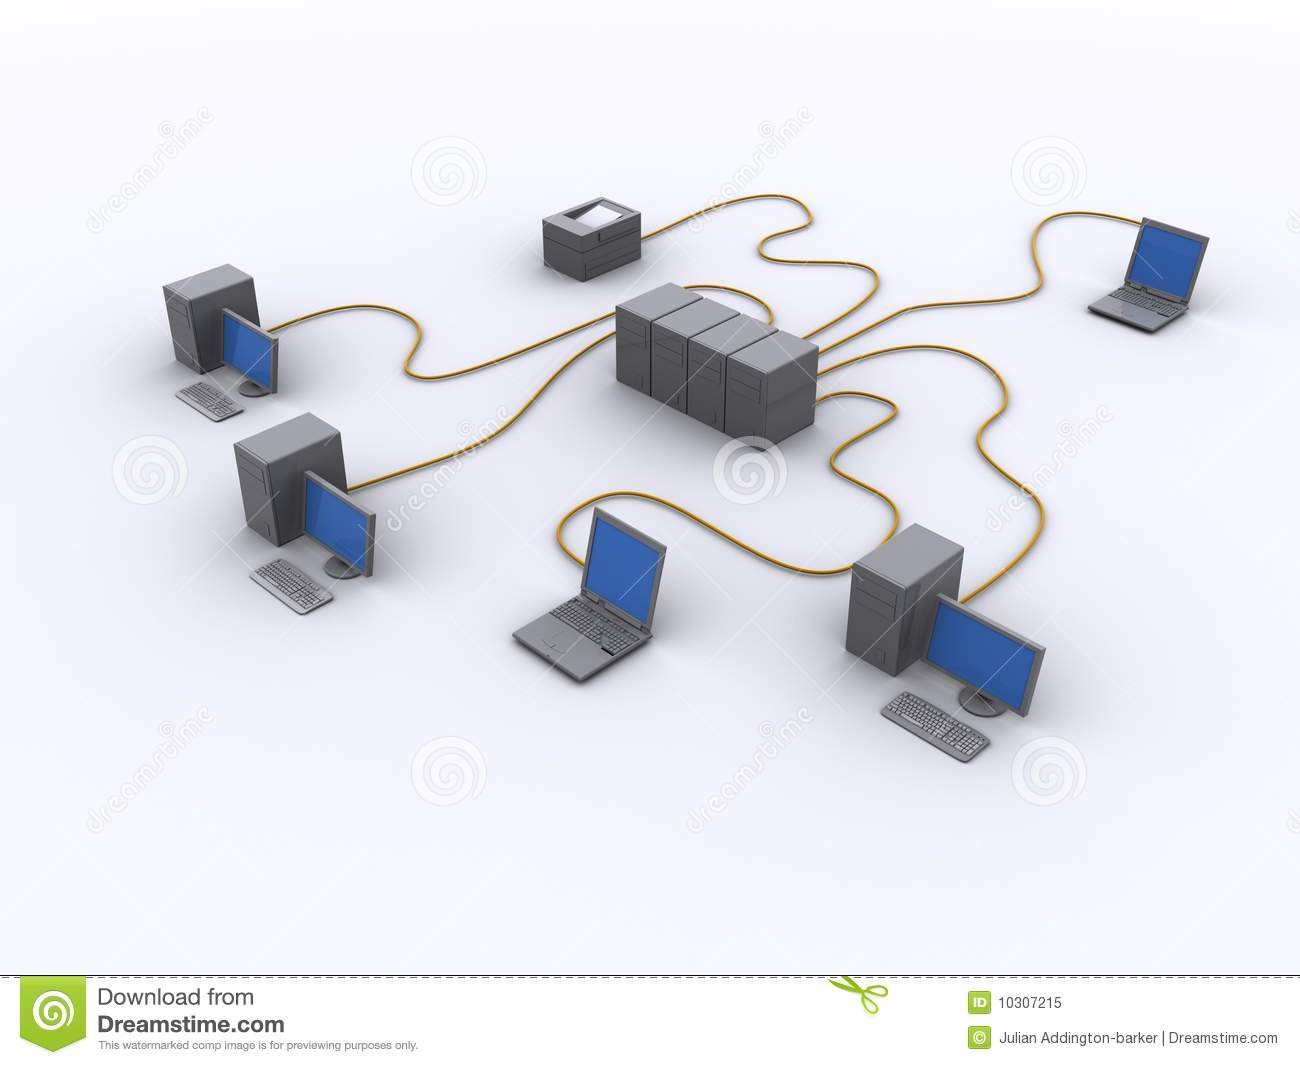 wired network diagram royalty free stock photo image 10307215 house wiring diagrams online house wiring diagram symbols